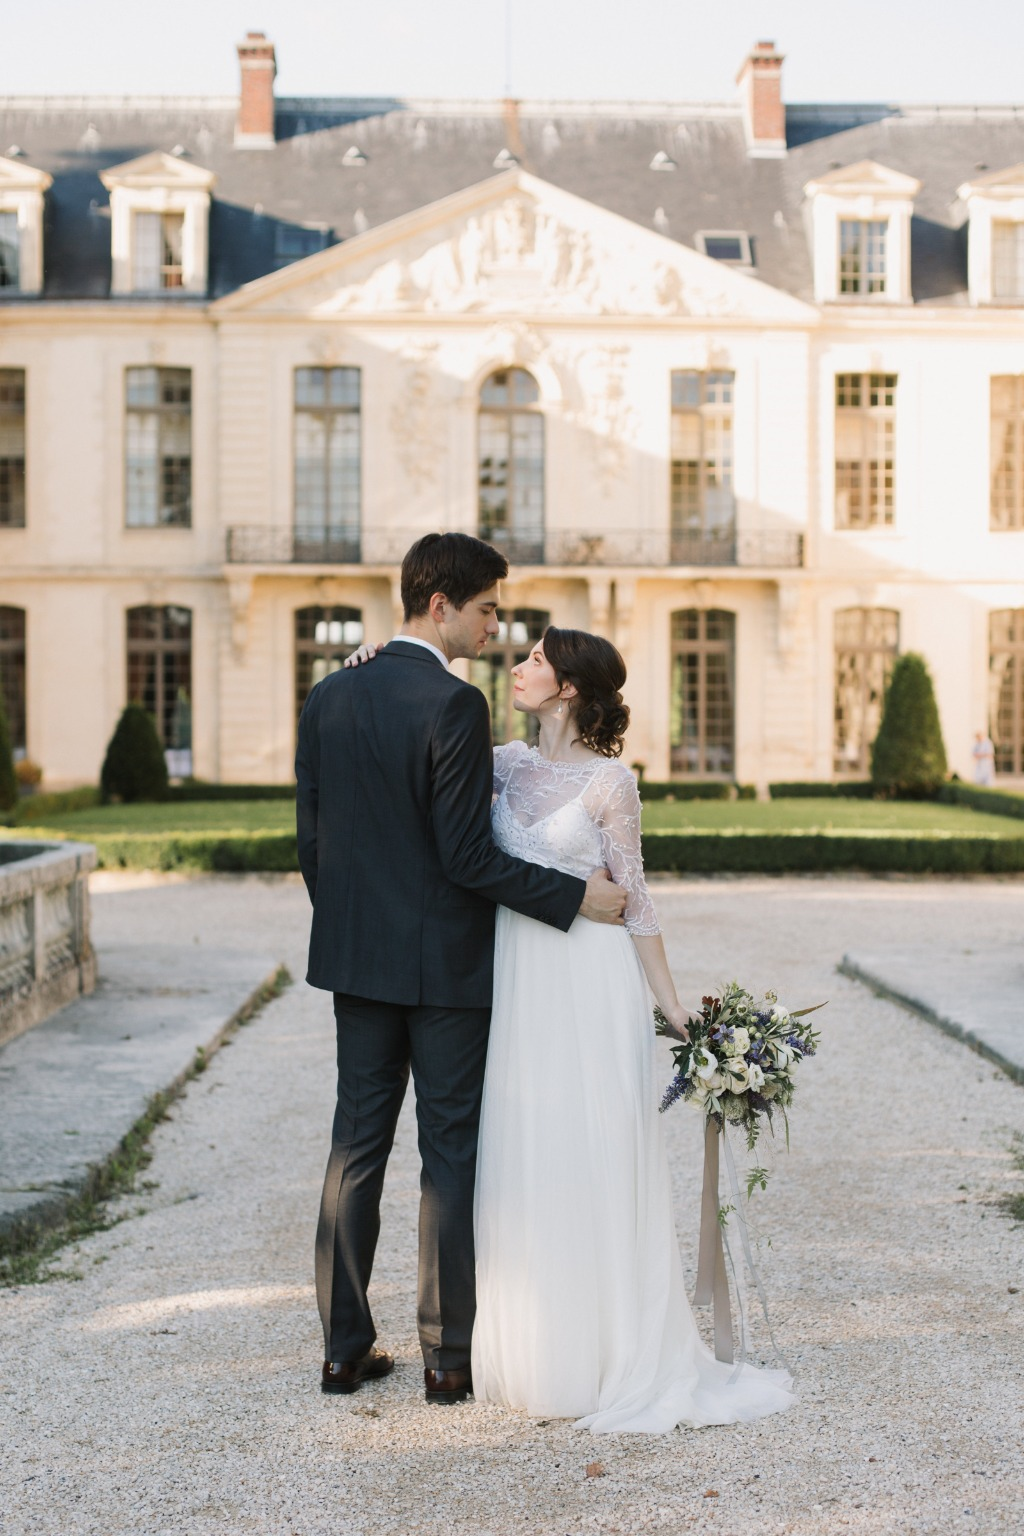 Intimate elopement in castle in France.